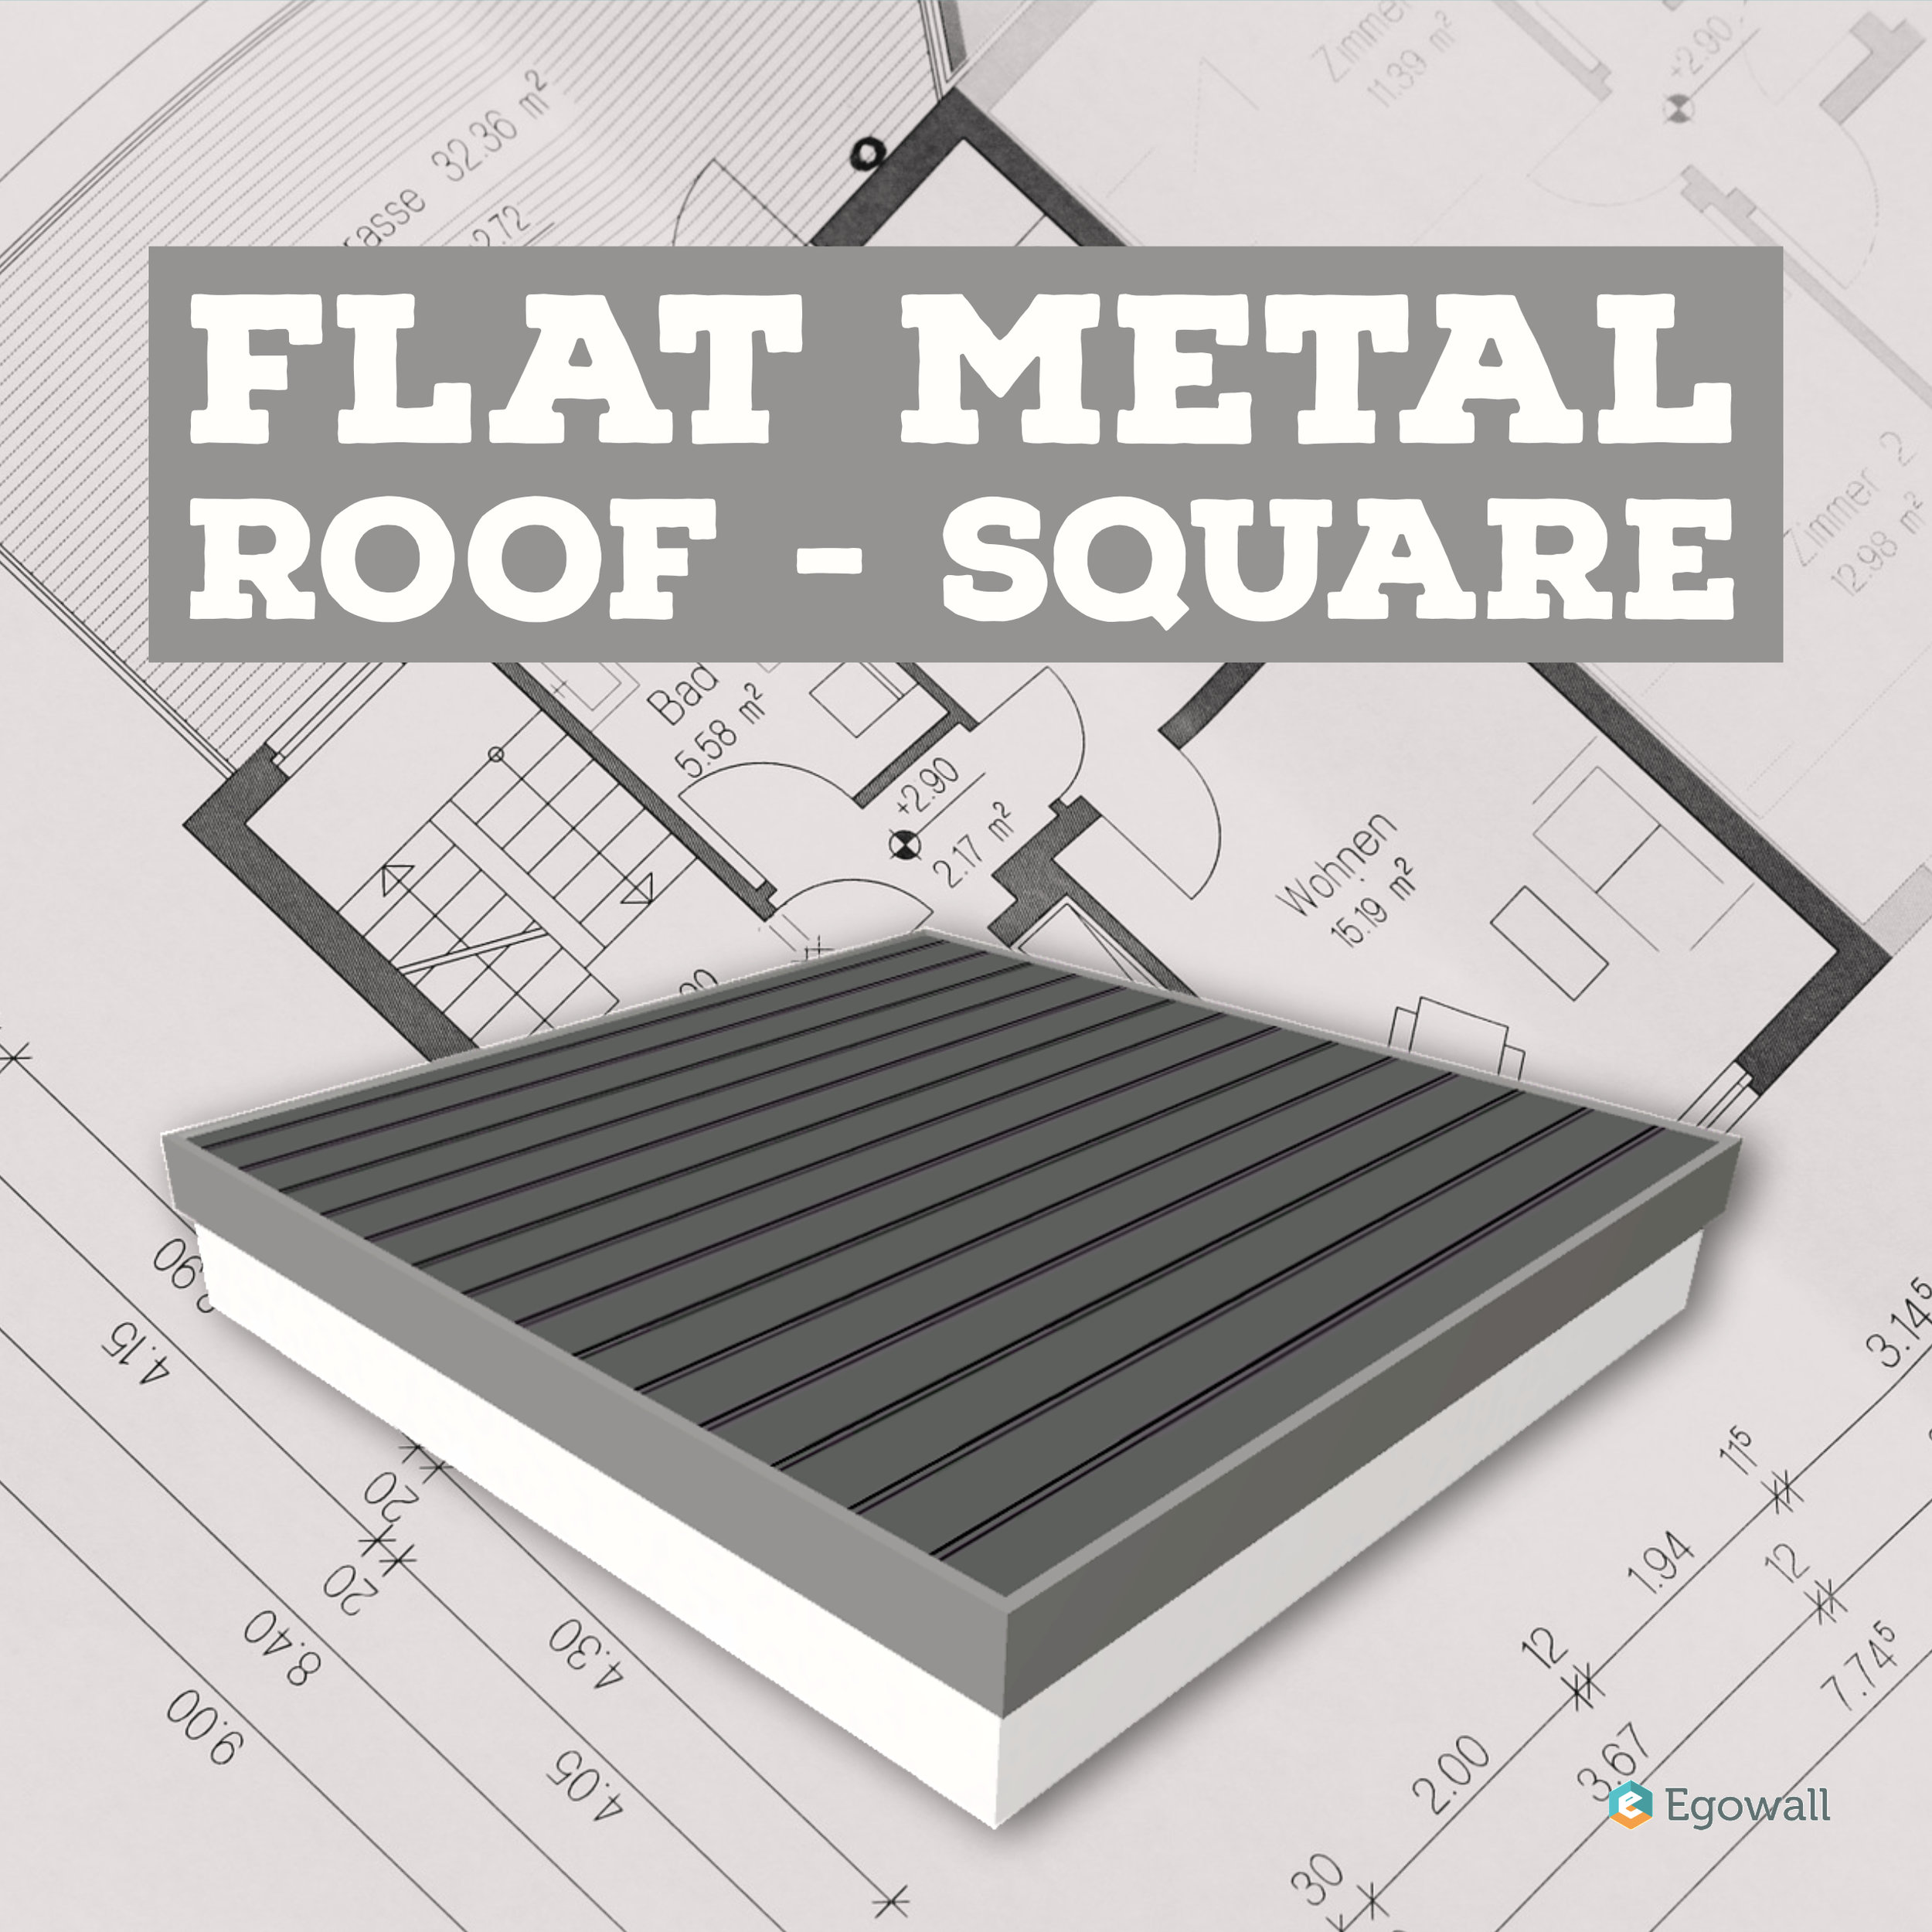 Flat Metal Roof - Square.Instagram.jpg